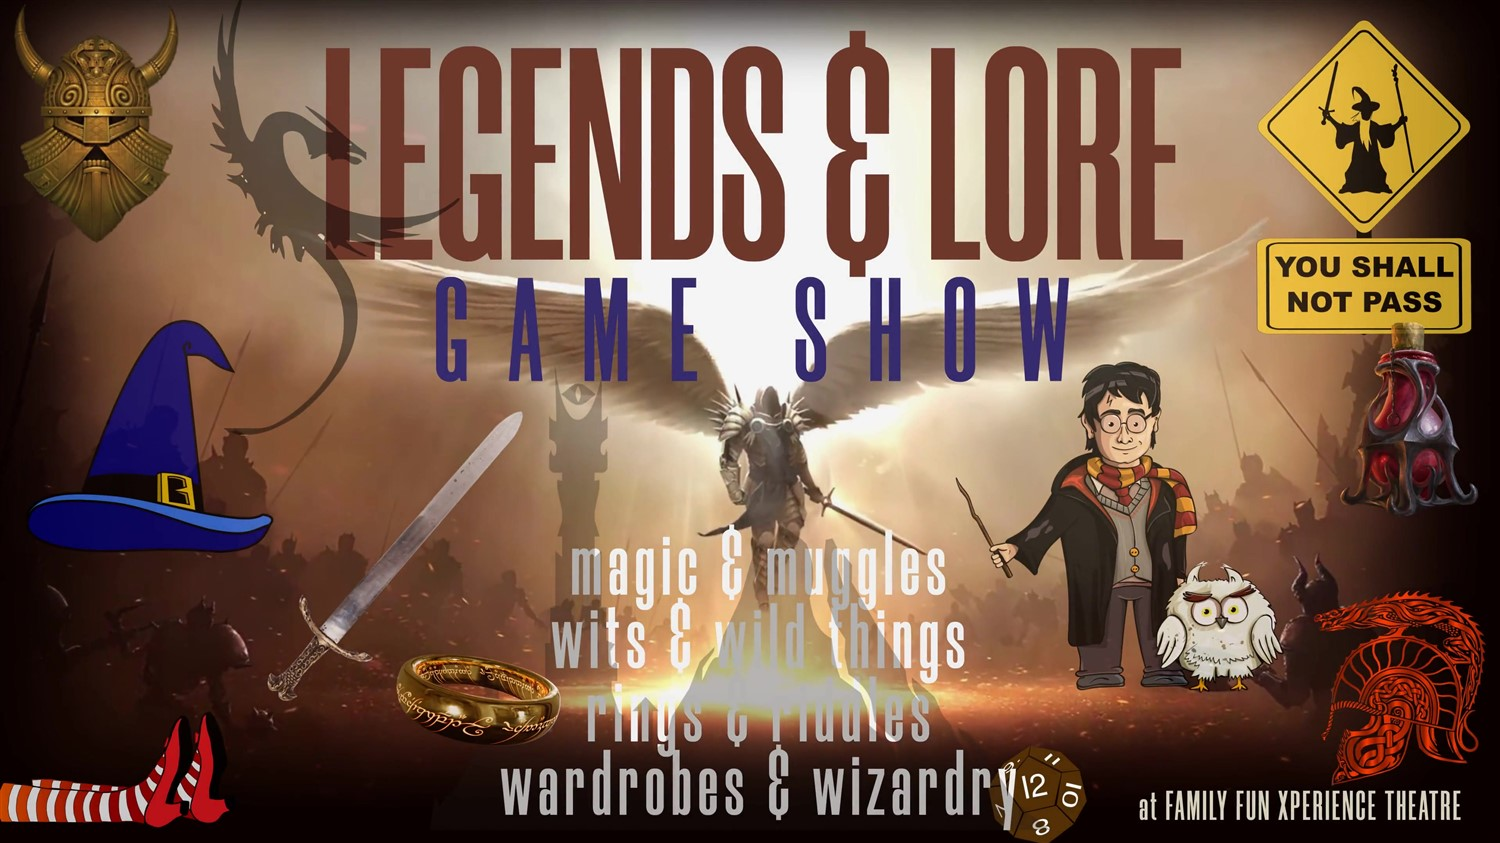 Legends & Lore Game Show Live, interactive fantasy world of fun and magic! on Oct 27, 19:00@FFX Theatre - Buy tickets and Get information on Family Fun Xperience tickets.ffxshow.org